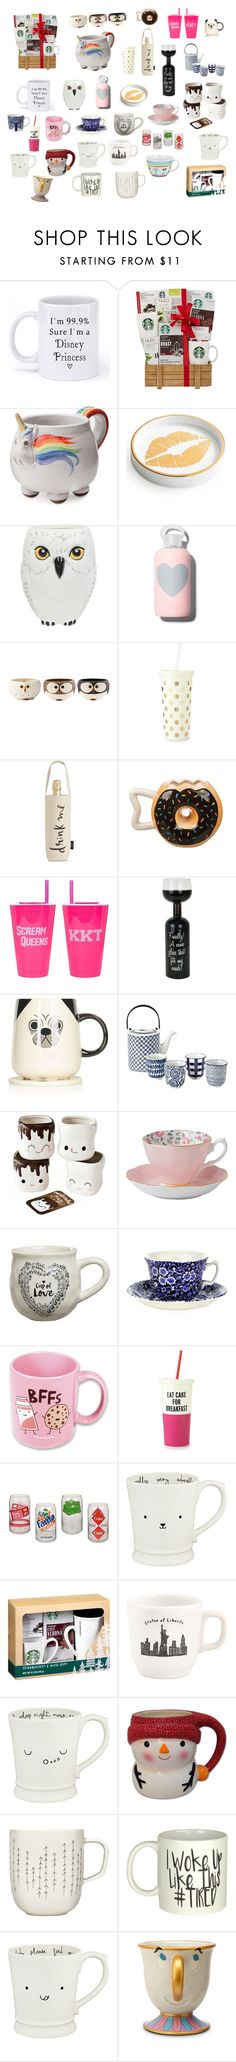 """""""Untitled #197"""" by georgia-rasmussen-gr ❤ liked on Polyvore featuring interior, interiors, interior design, home, home decor, interior decorating, Disney, Elwood, bkr and Kate Spade"""